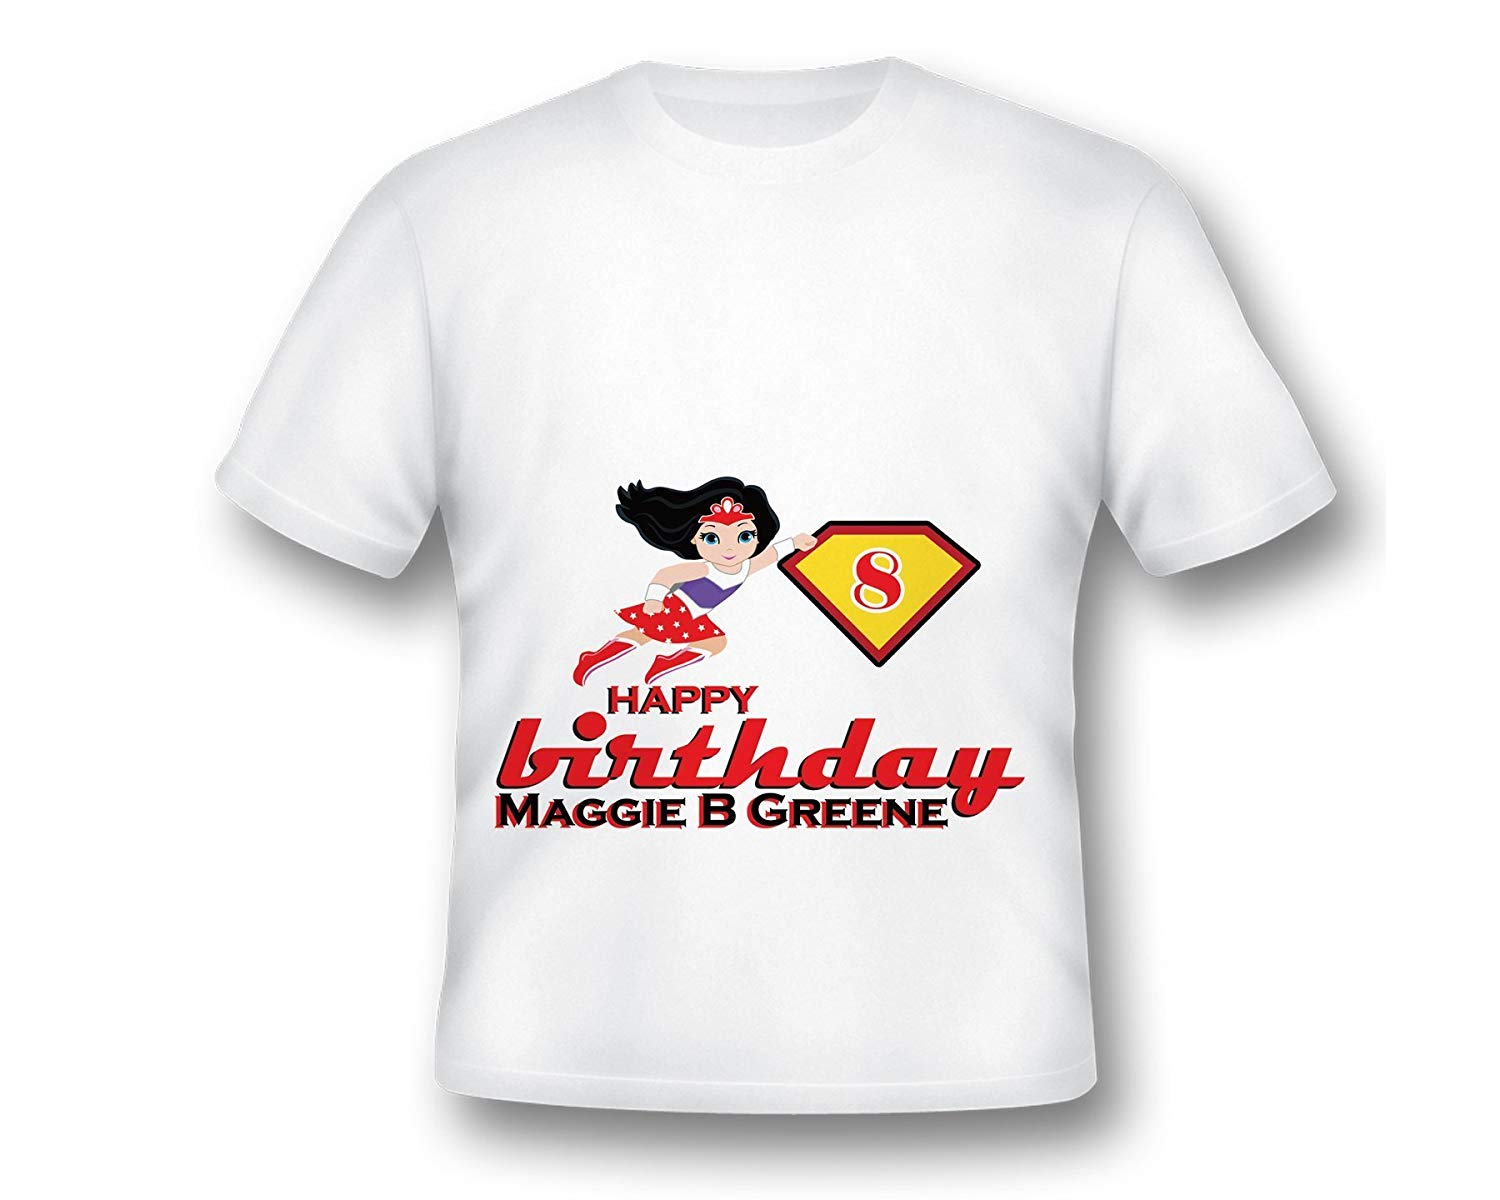 Personalize Super Hero Girl Tee Shirt Fun Custom